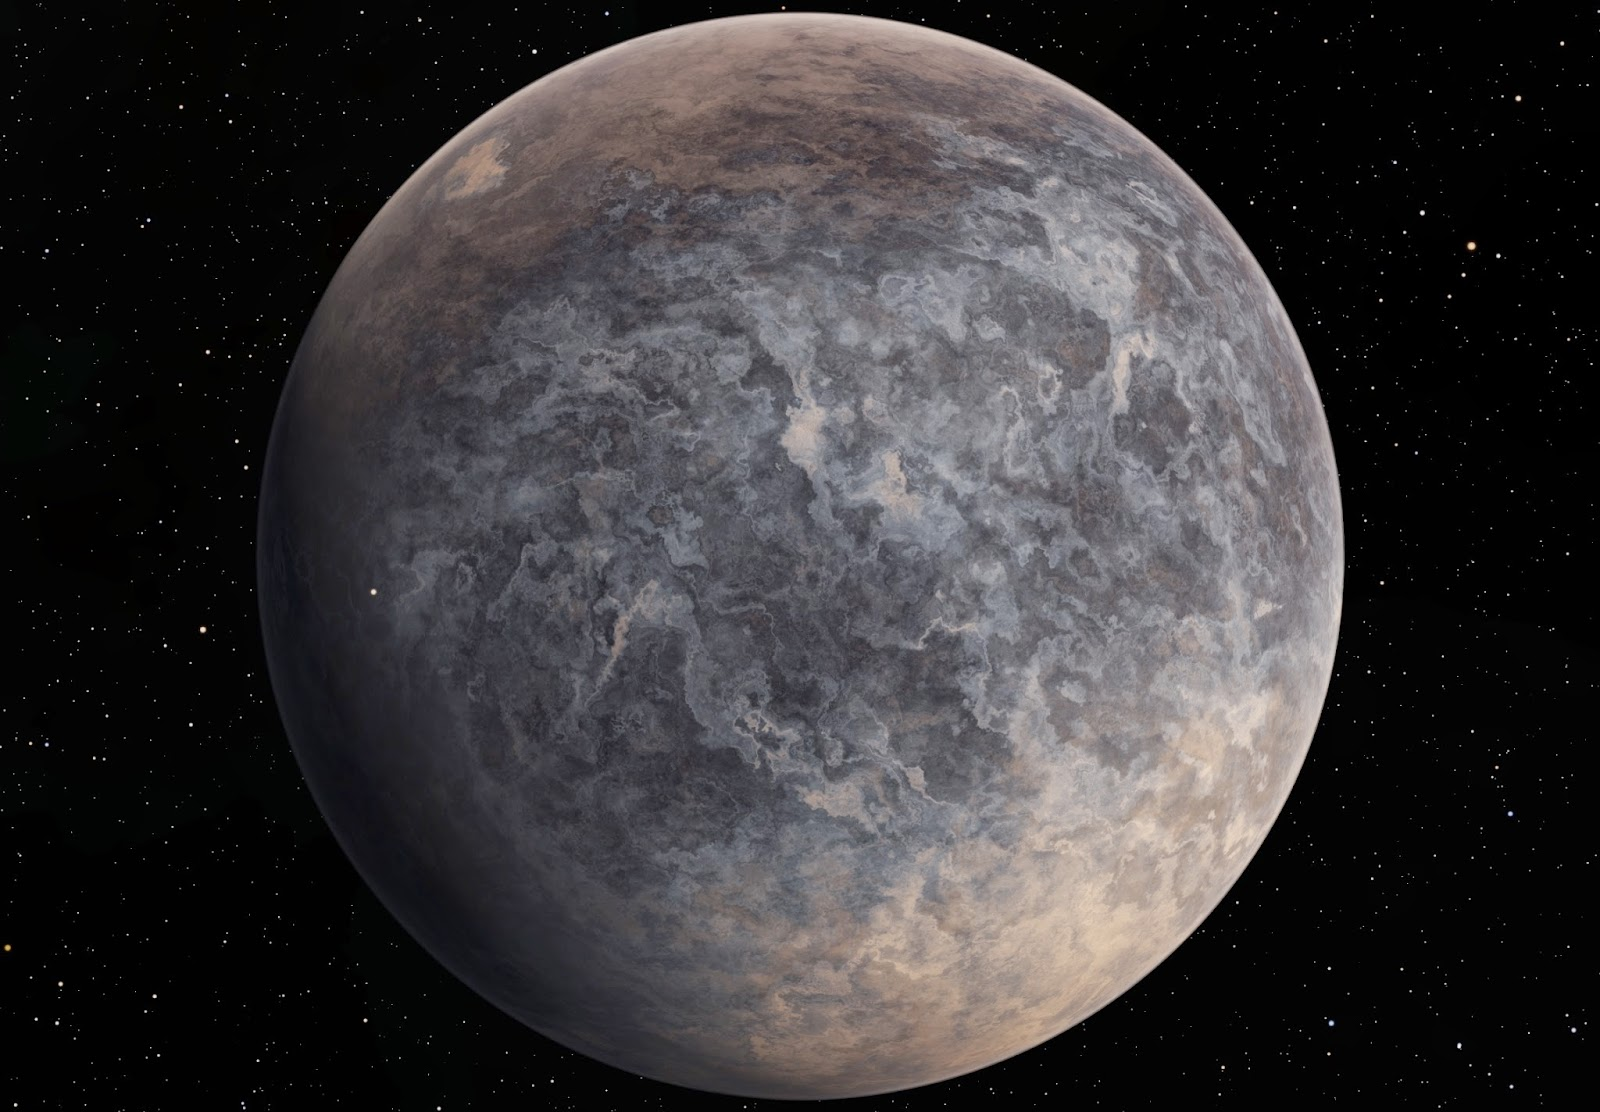 gas planets and rocky planets - photo #44